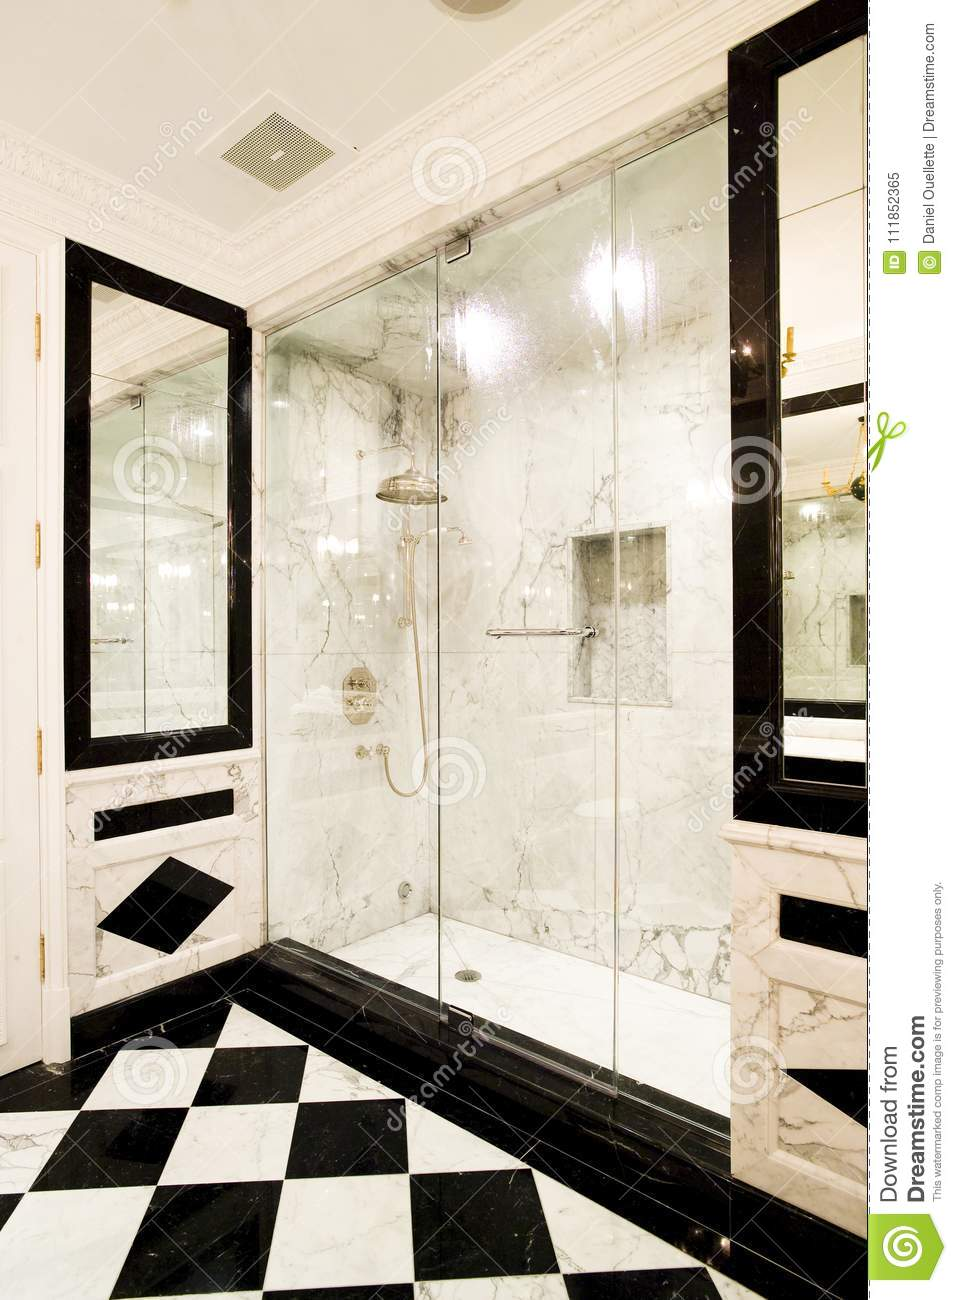 White Marble Shower With Glass Doors Stock Image - Image of bathroom ...